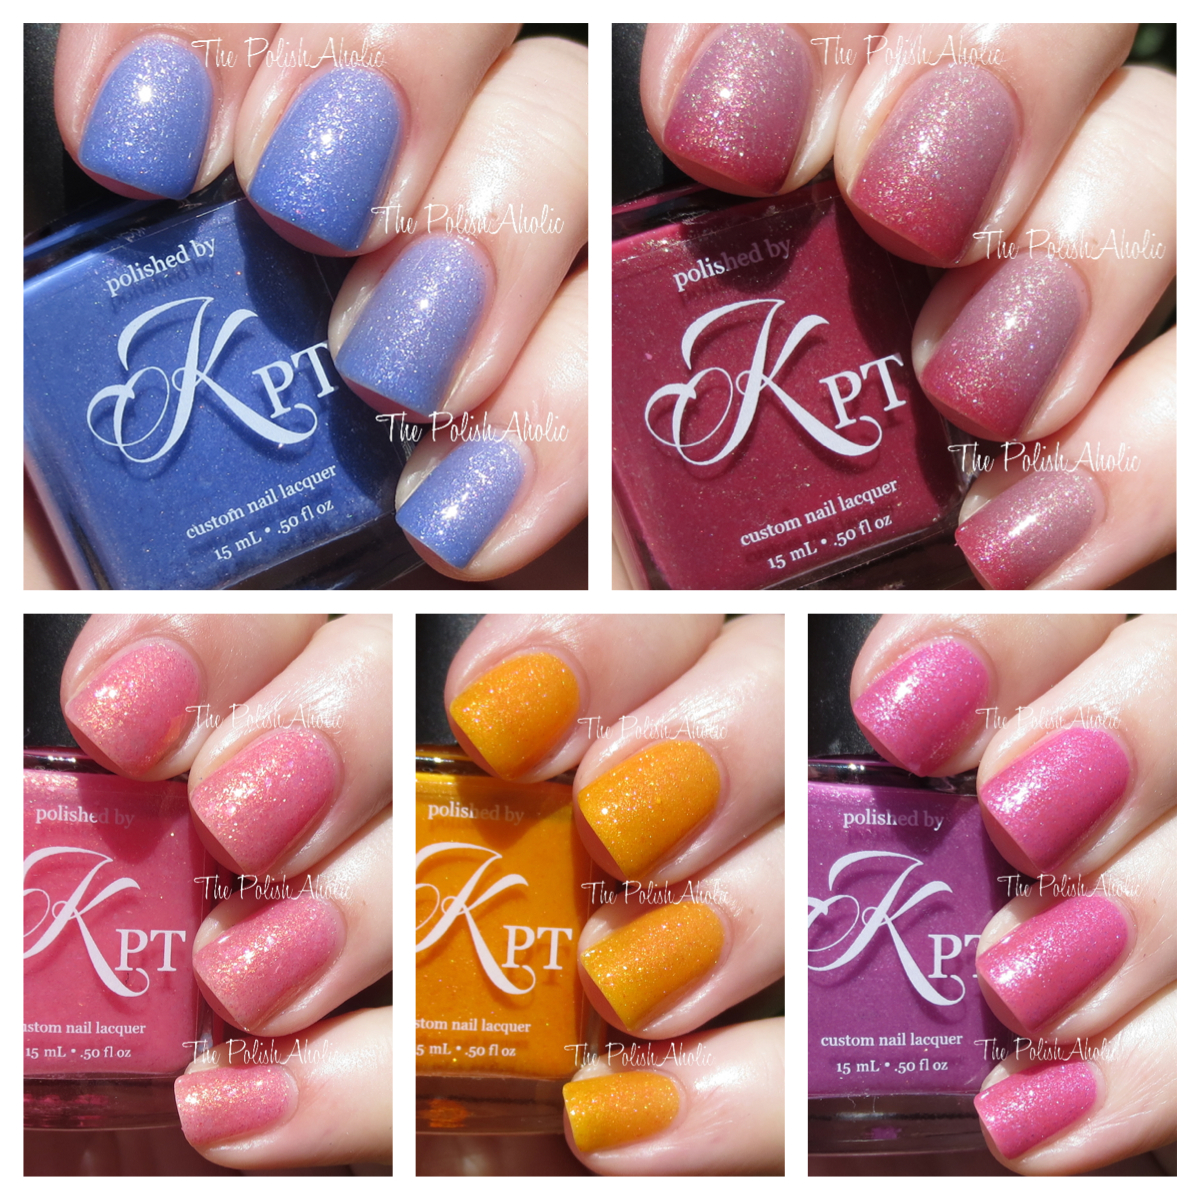 The PolishAholic: Polished by KPT March Into Spring Collection ...